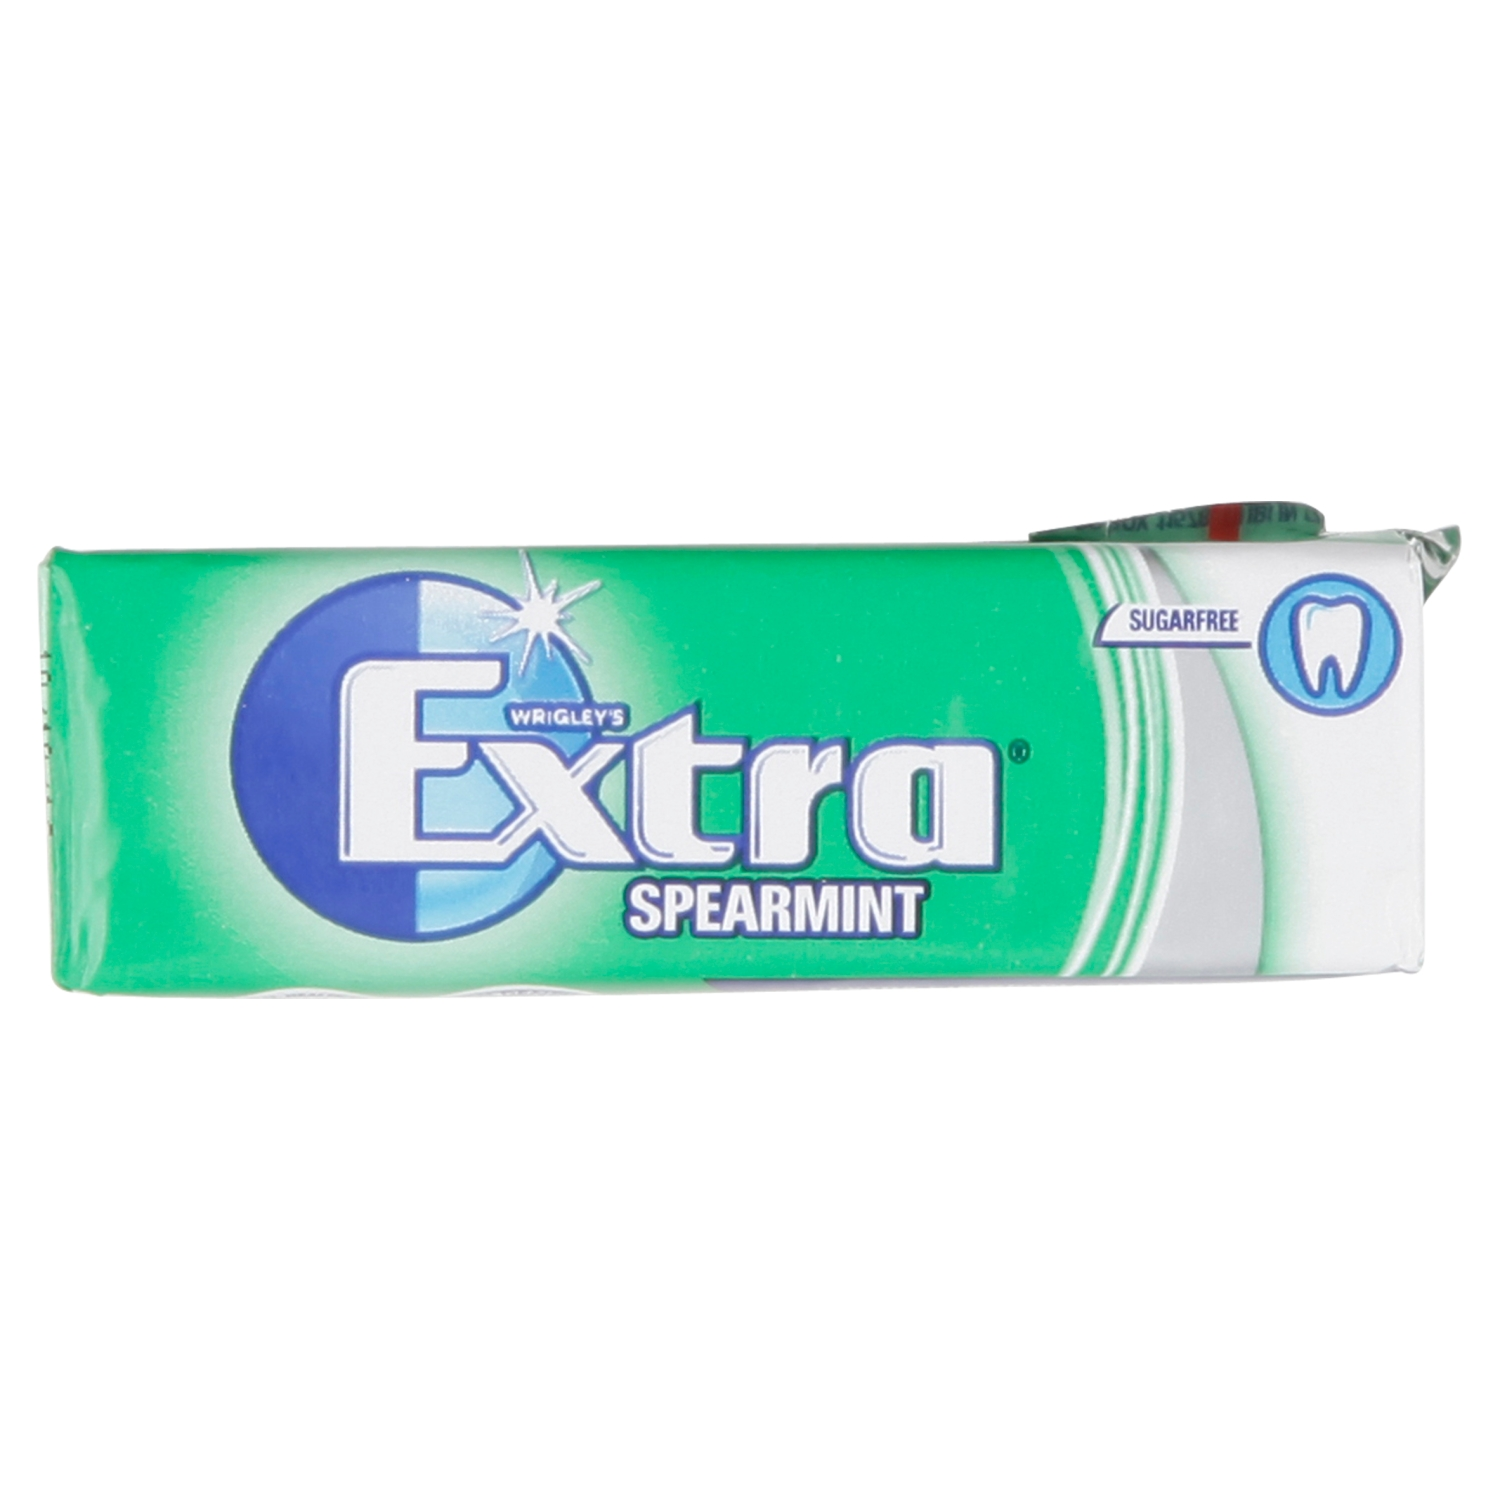 Wrigley's Extra Spearmint Sugarfree Chewing Gum 10 Pieces 14g